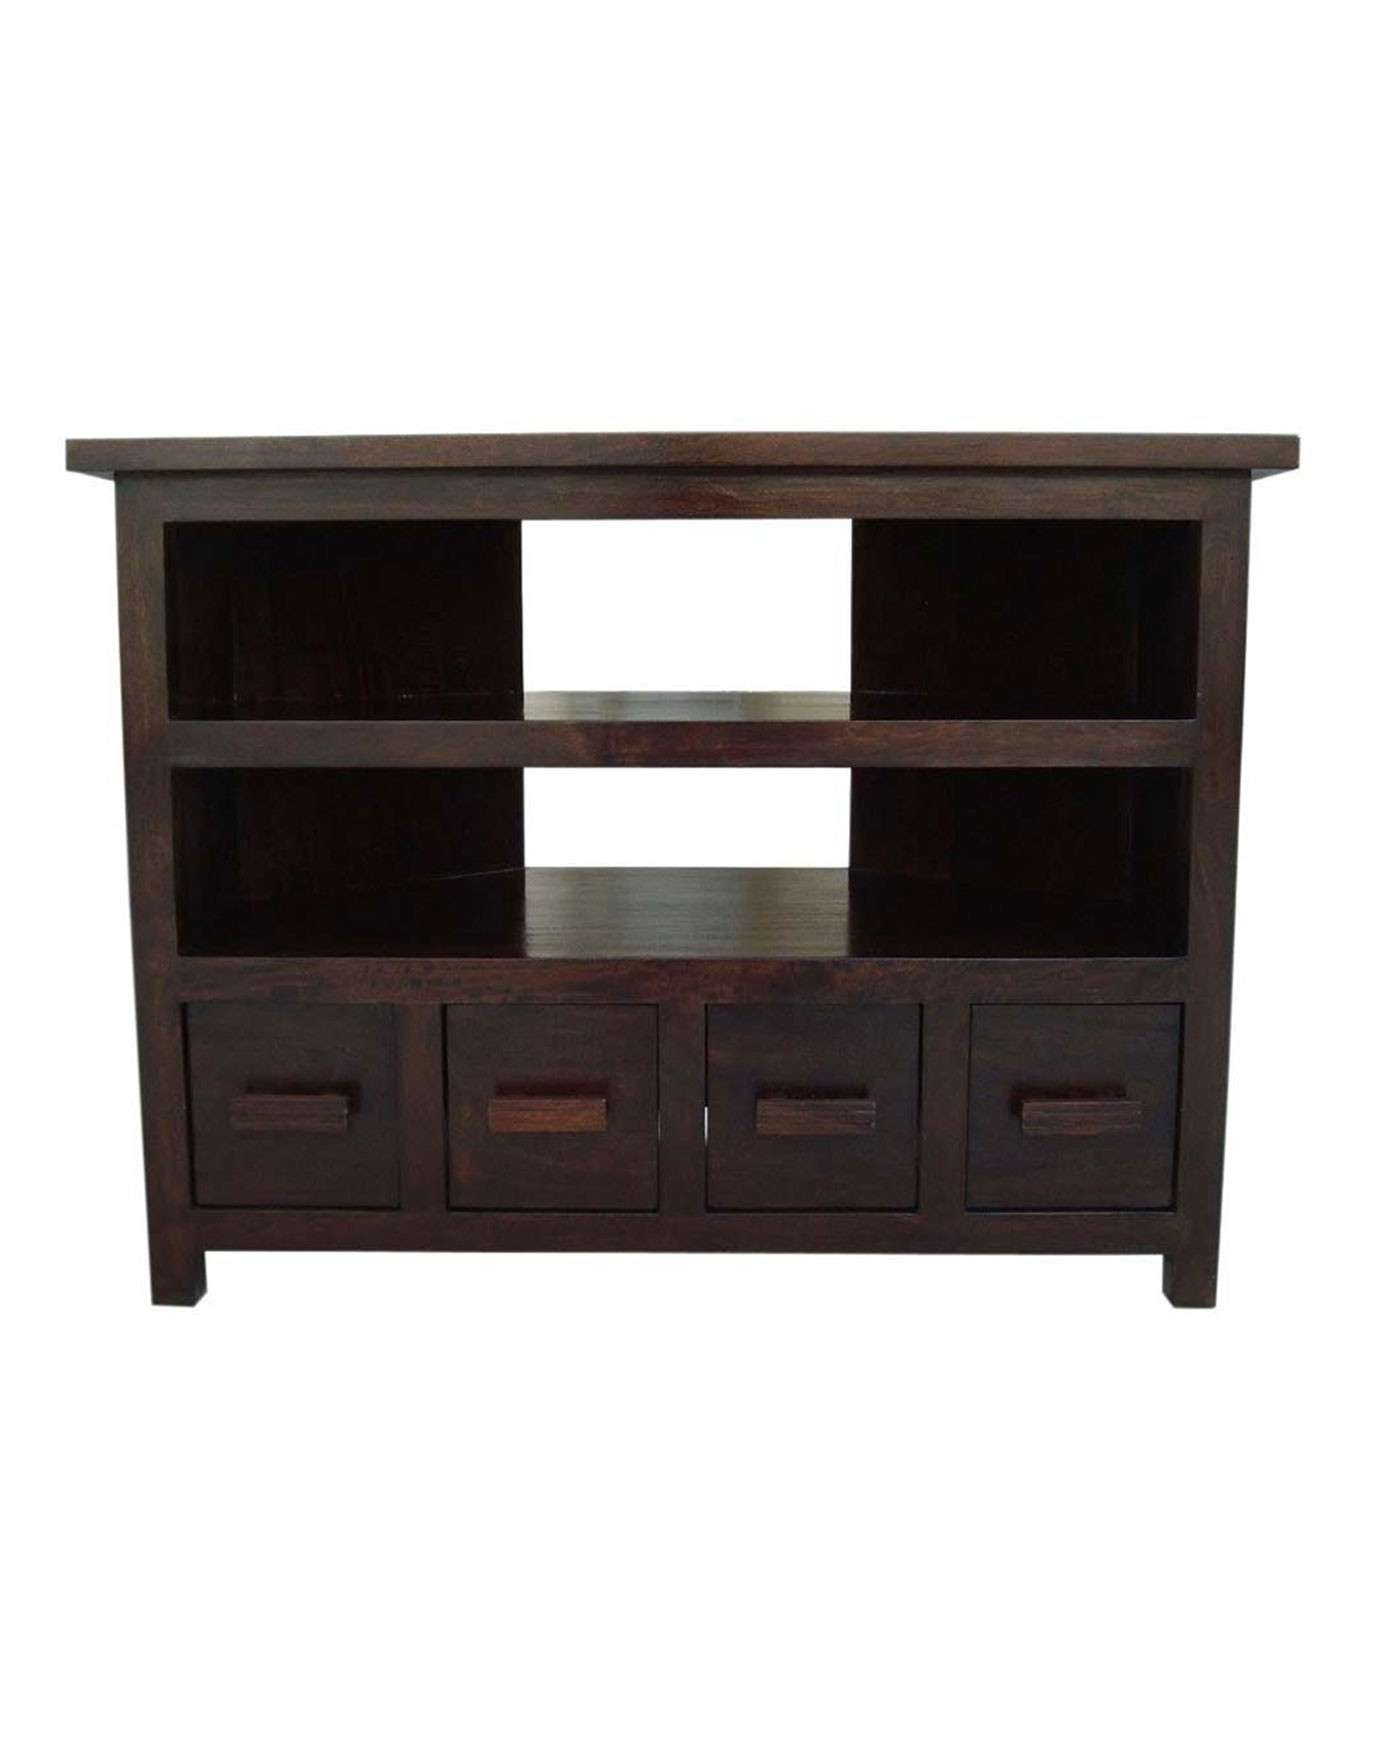 Mangat Tall Corner Tv Unit – Homescapes With Dark Wood Corner Tv Cabinets (View 12 of 20)